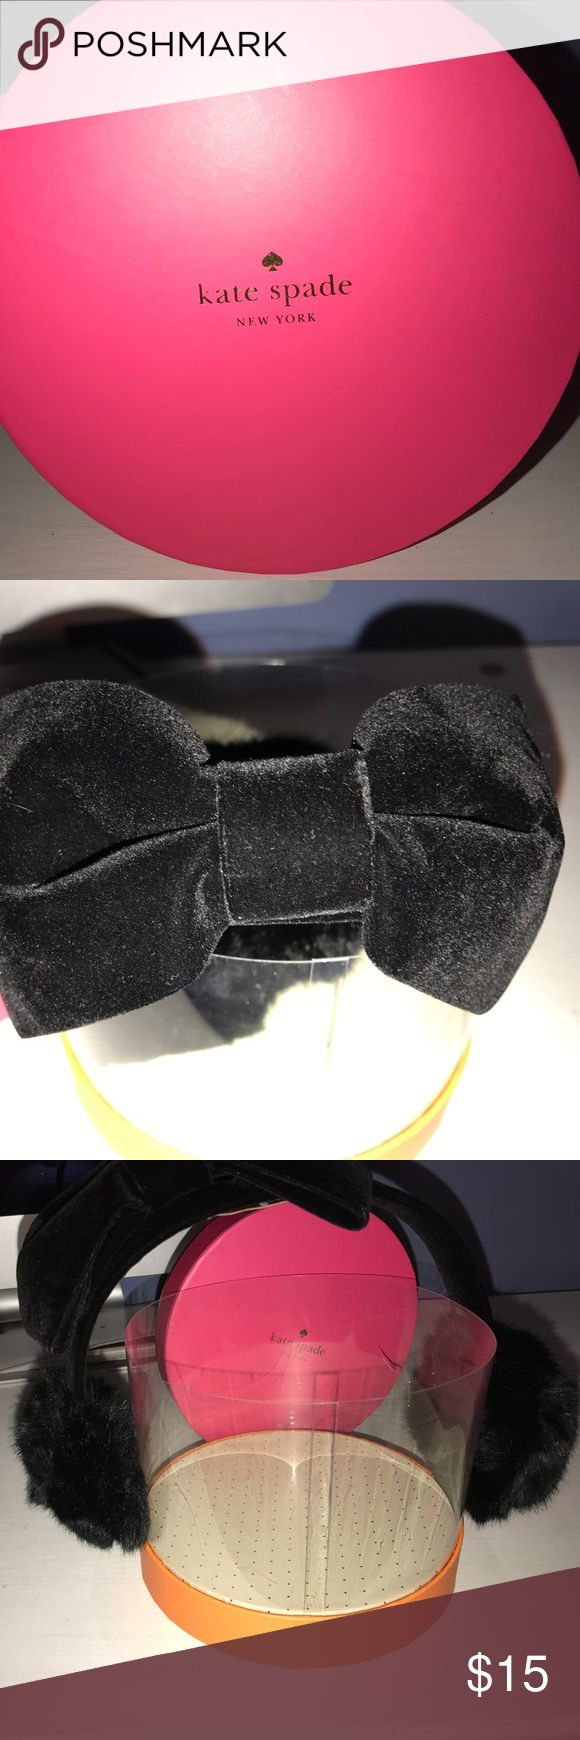 Kate spade ♠️  ear muffs Brand new in super cute box Kate spade ear muffs  cute bow on top kate spade Accessories Gloves & Mittens